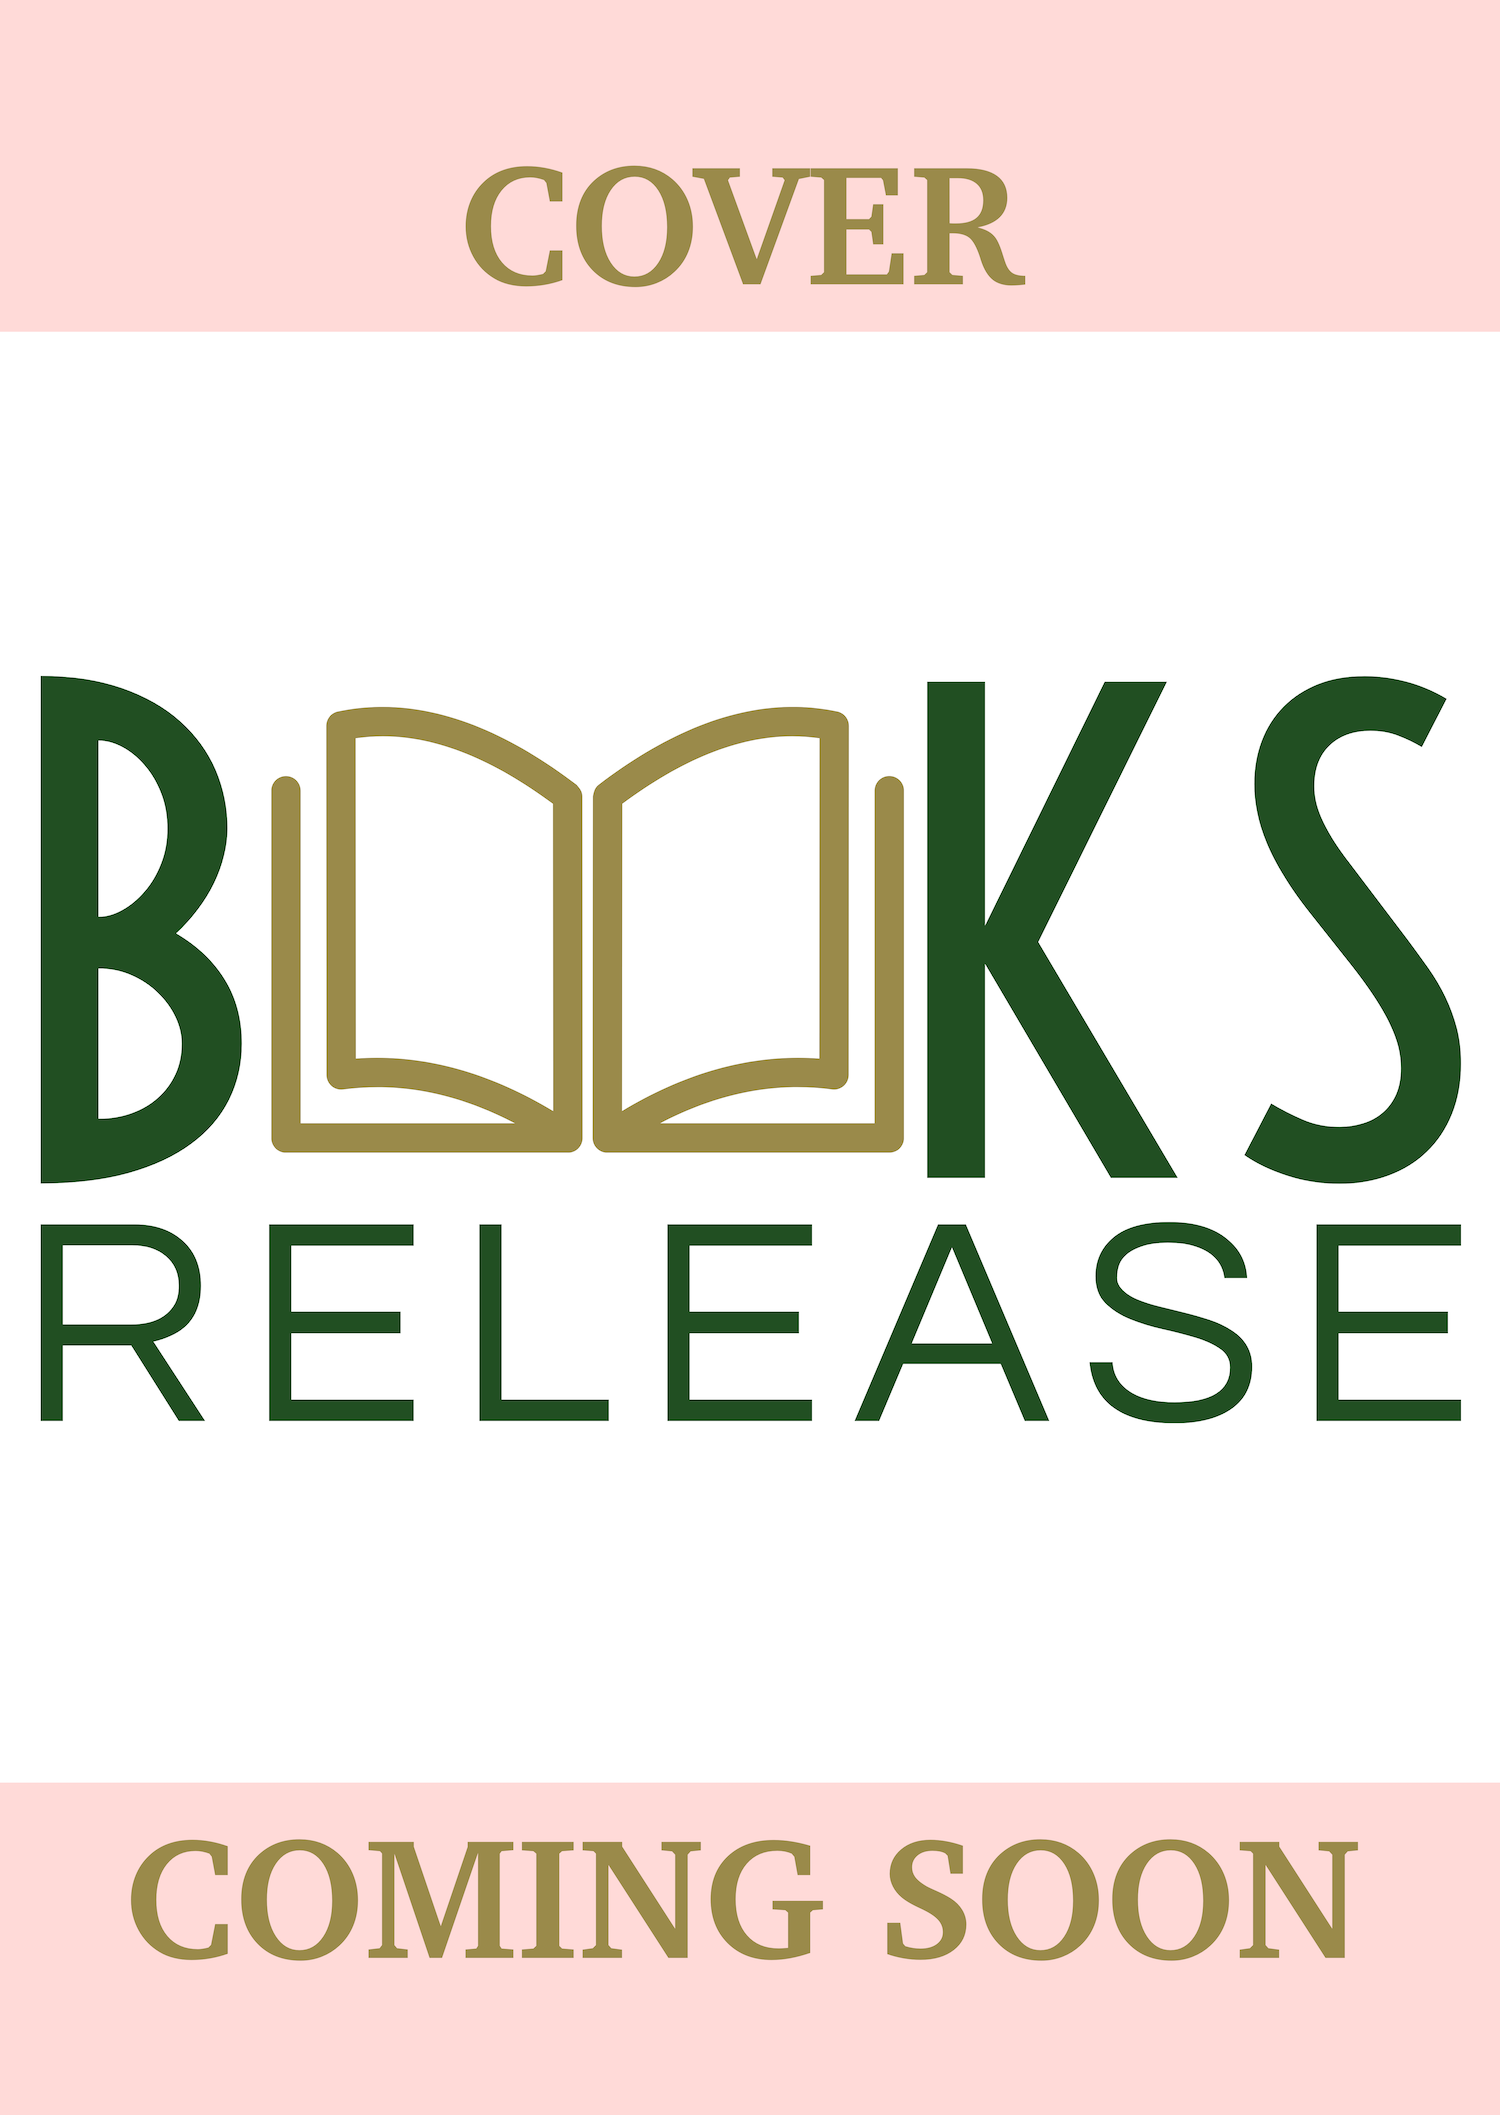 Fourteen Days: An Unauthorized Gathering Release Date? Margaret Atwood 2022 New Releases